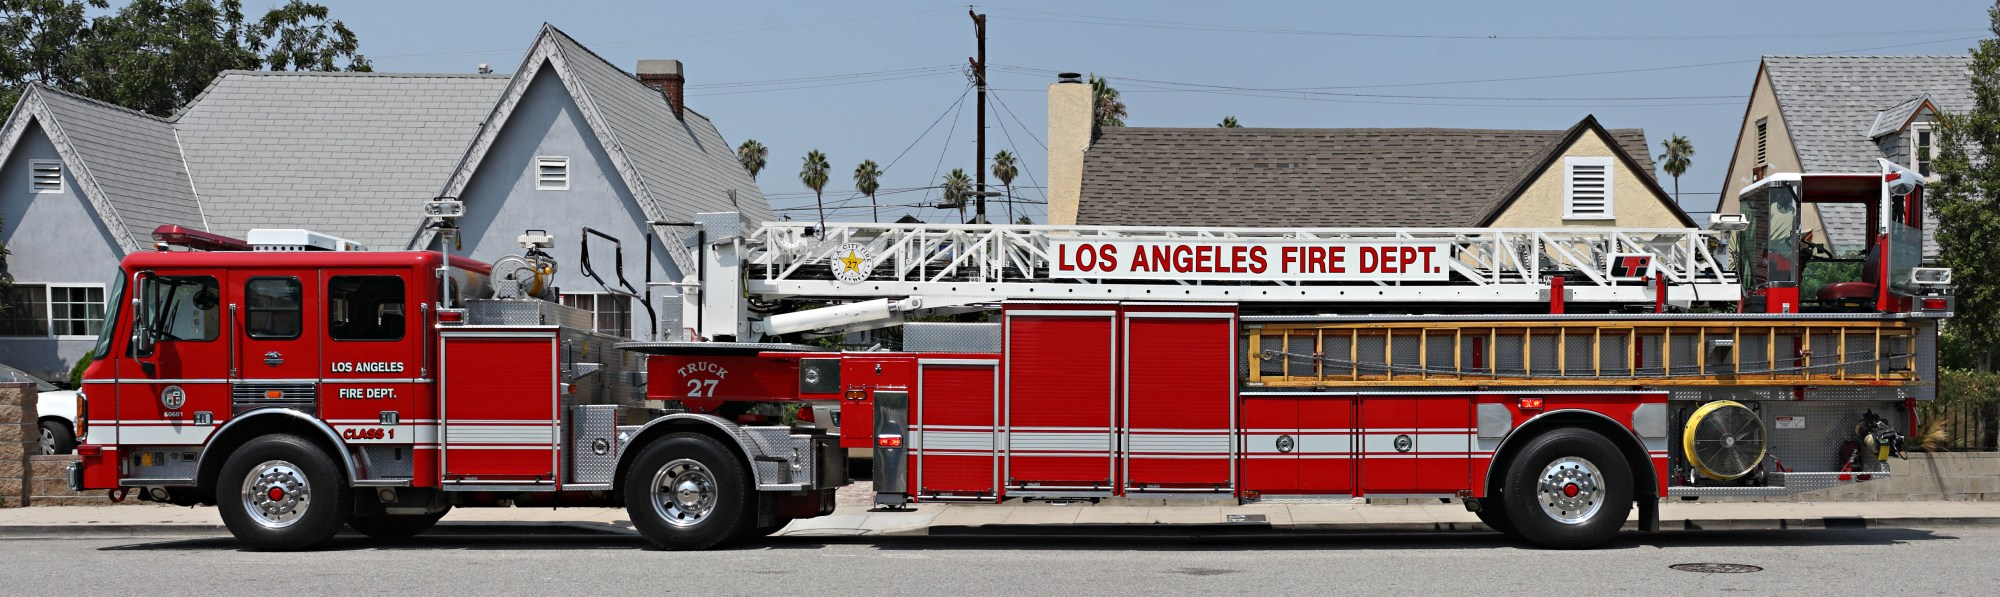 hight resolution of tiller truck of the los angeles fire department manufactured by american lafrance